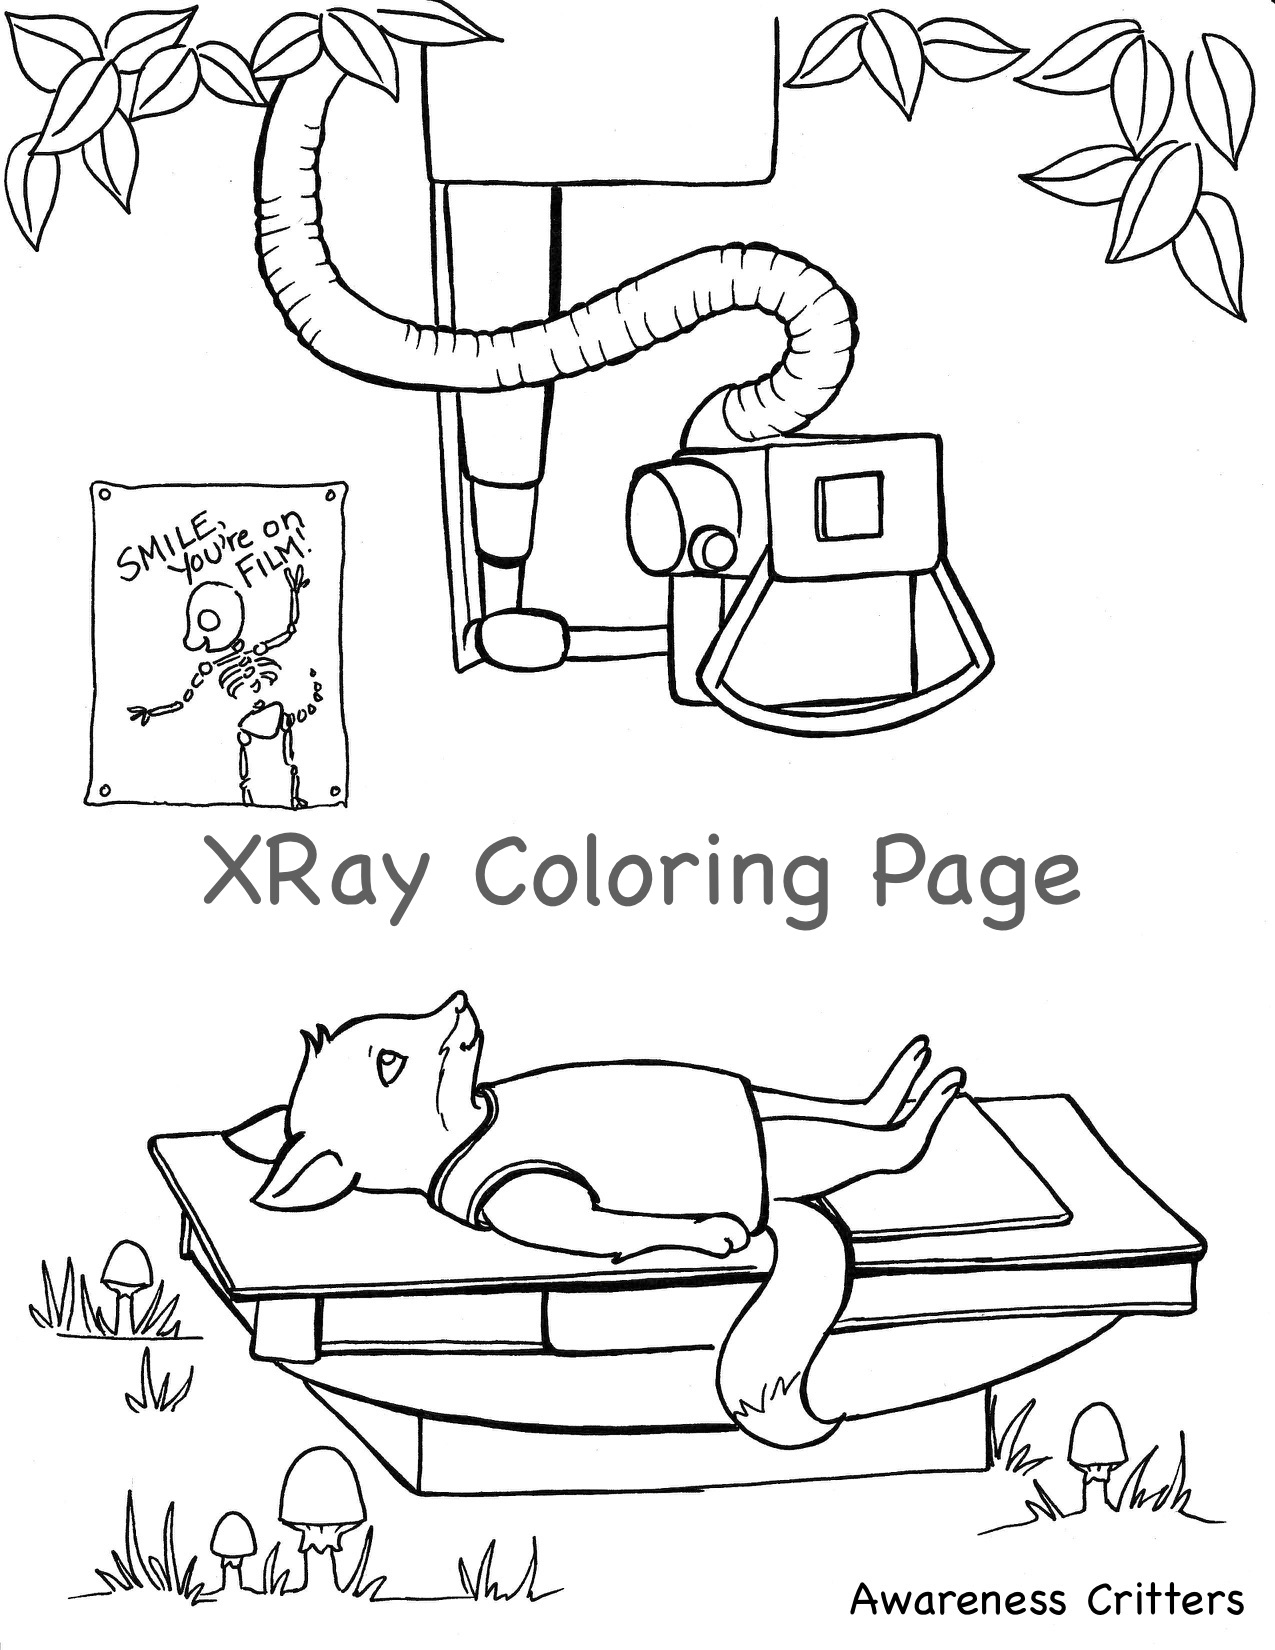 X ray coloring sheets - General Awareness Critter Coloring Pages